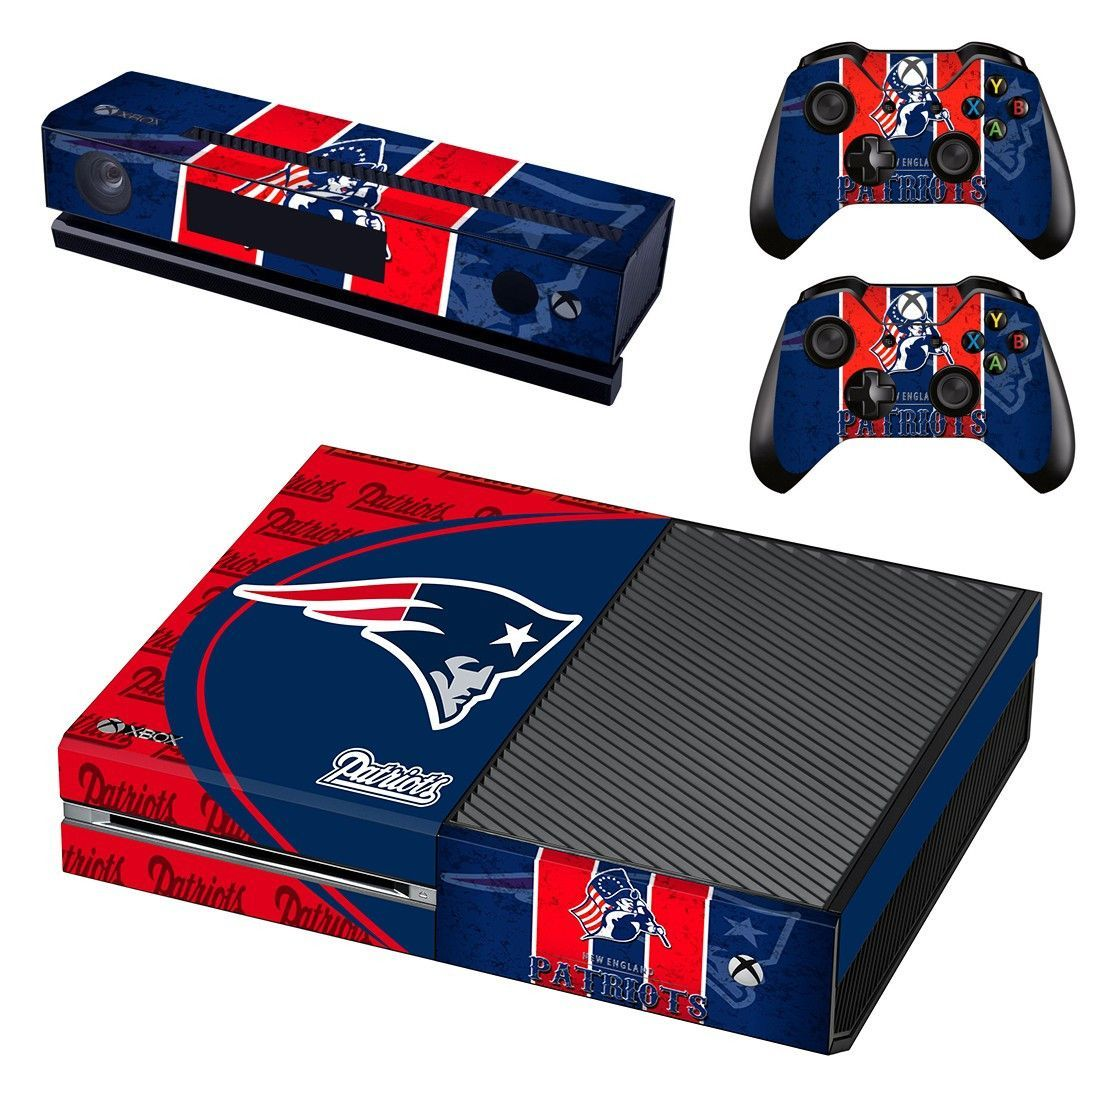 New England Patriots Xbox One Skin Decal For Console And 2 Controllers Https Www Fanprint Com Licenses New England Pa Xbox One Skin Xbox One Xbox One Console